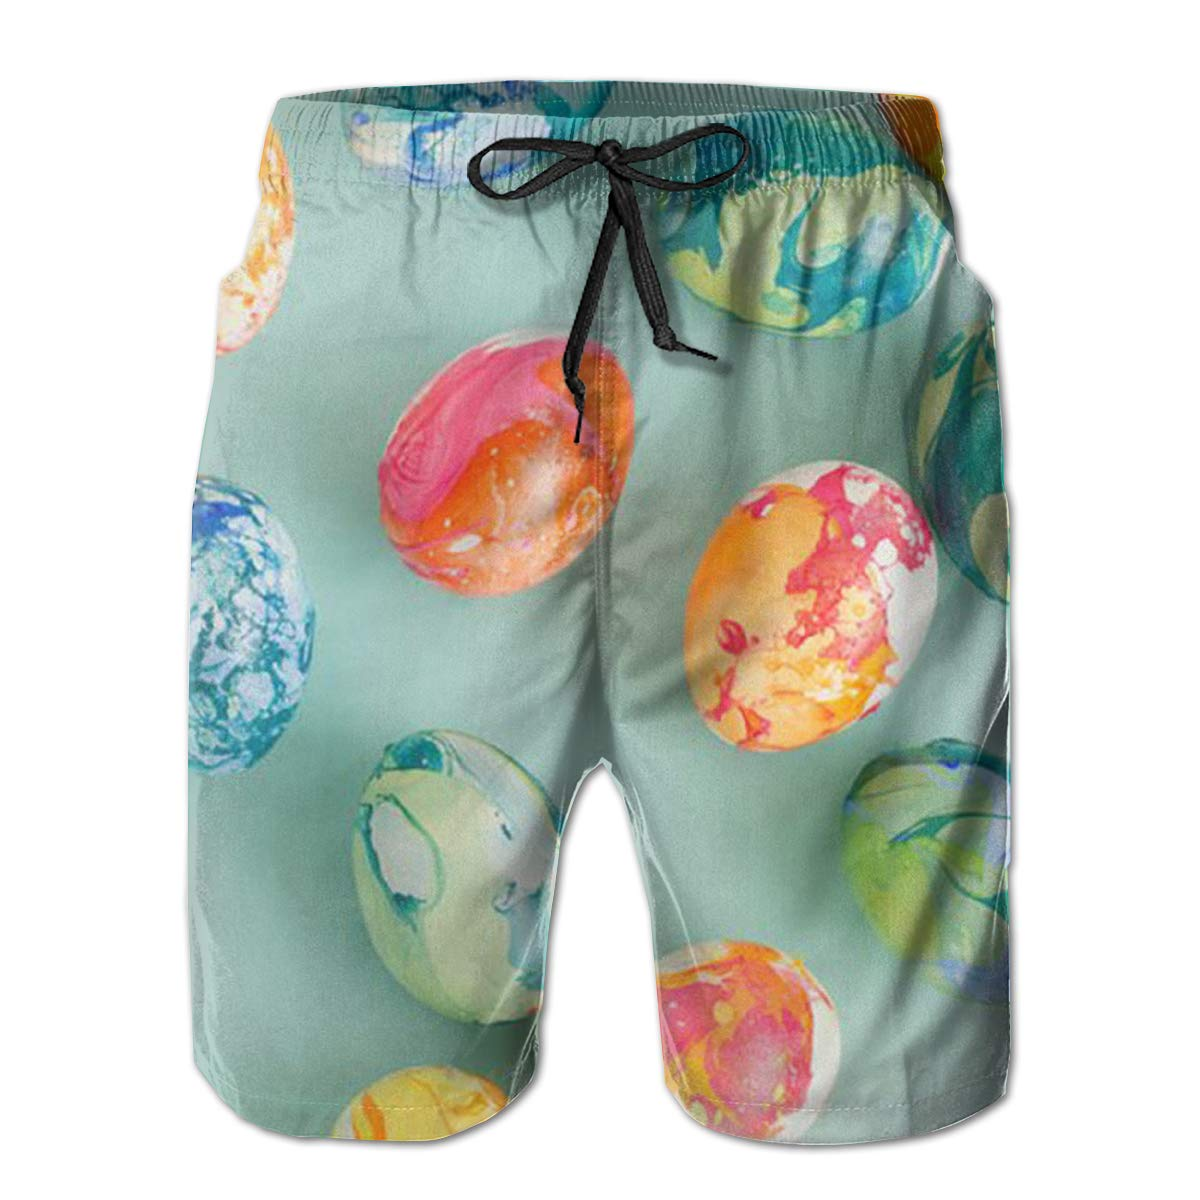 WEFHVM Happy Easter Mens Beach Board Shorts Quick Dry Summer Casual Swimming Soft Fabric with Pocket